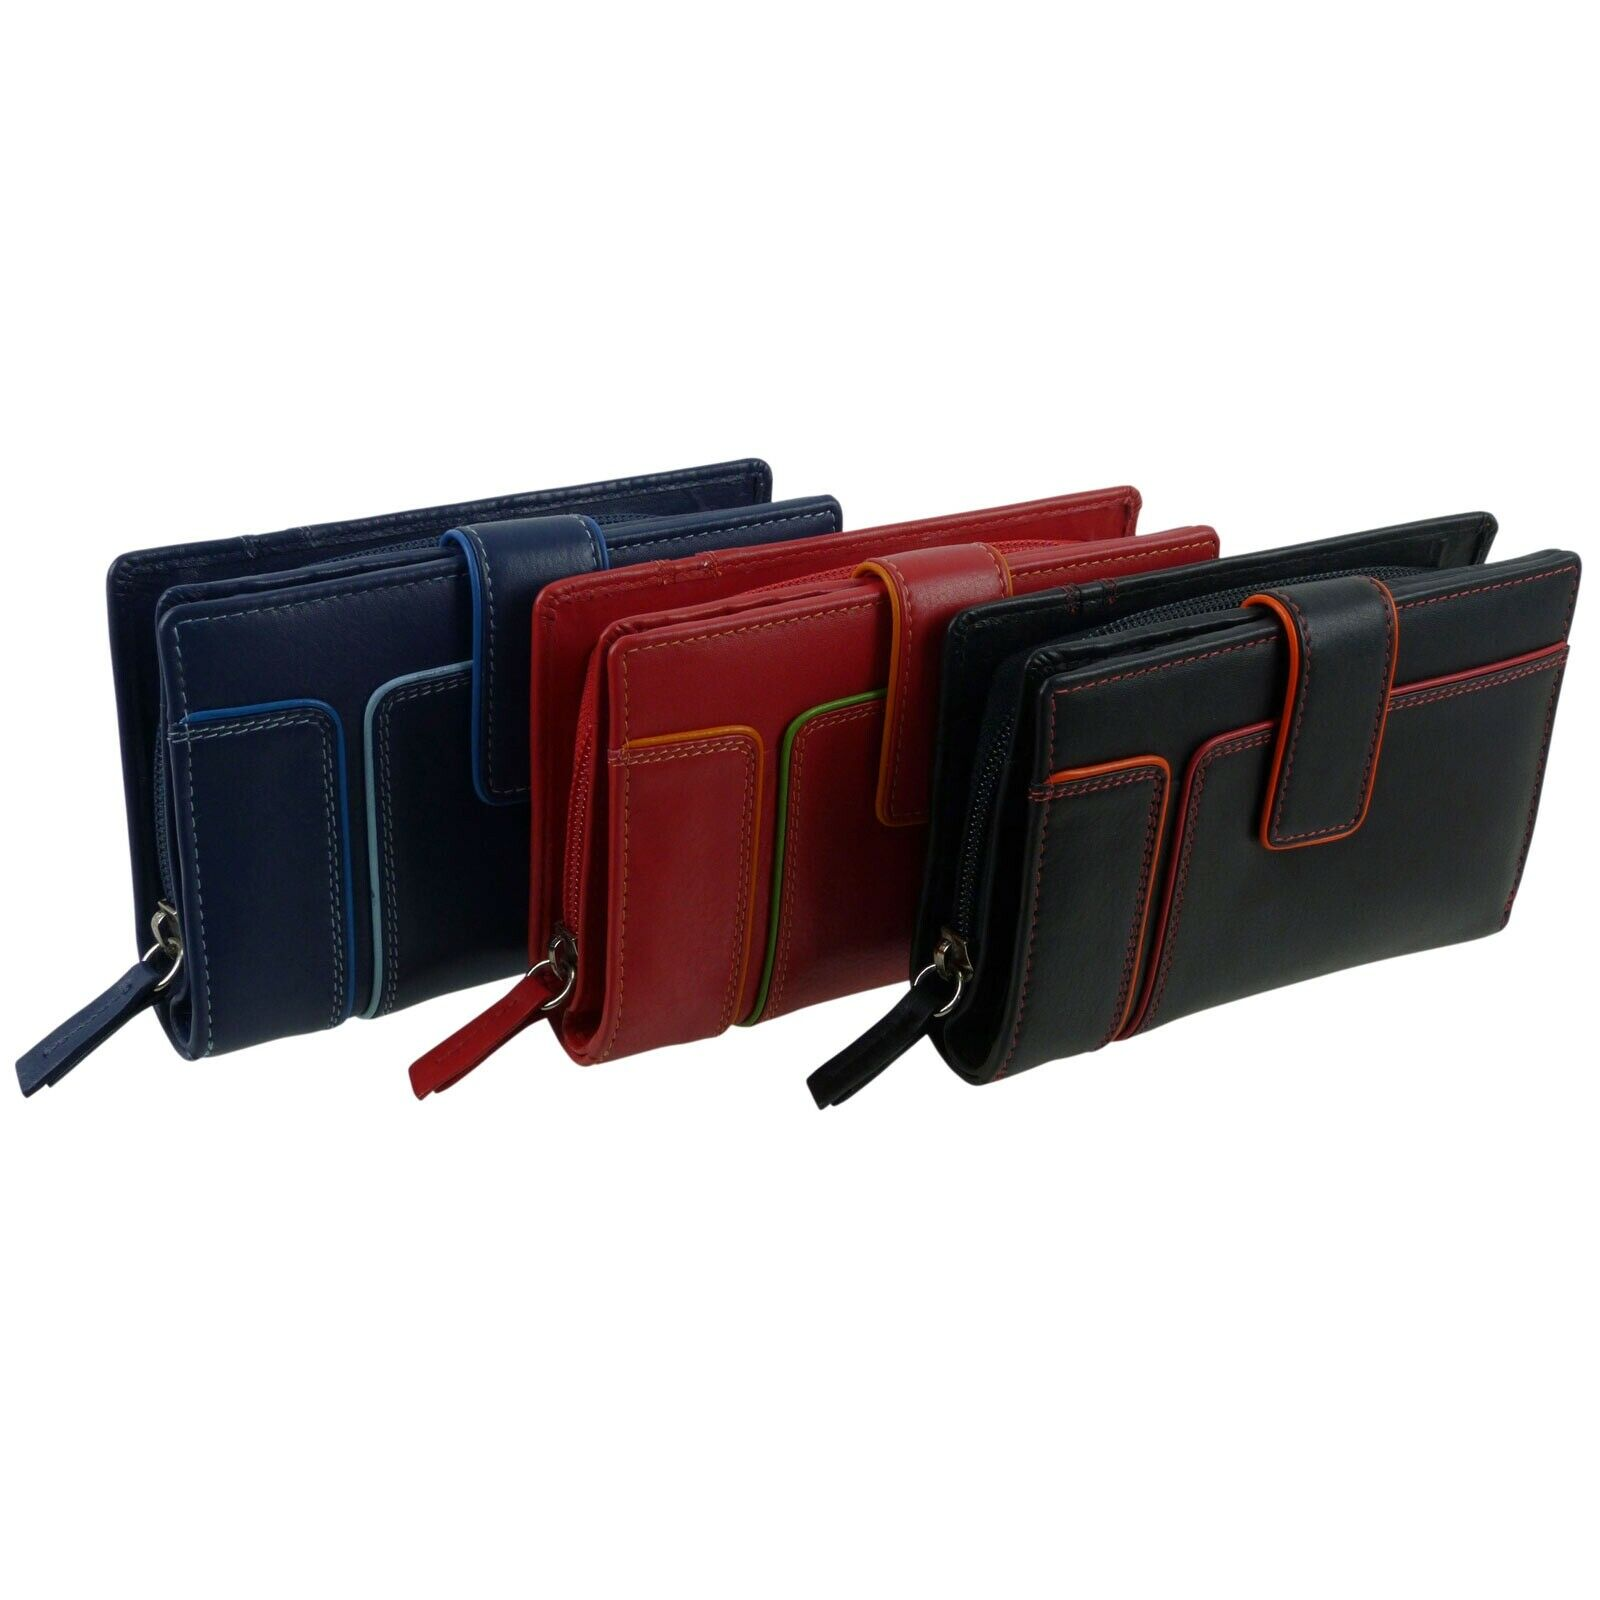 Ladies Top Quality Medium Tabbed RFID Purse From The Hette Range By Prime Hid...